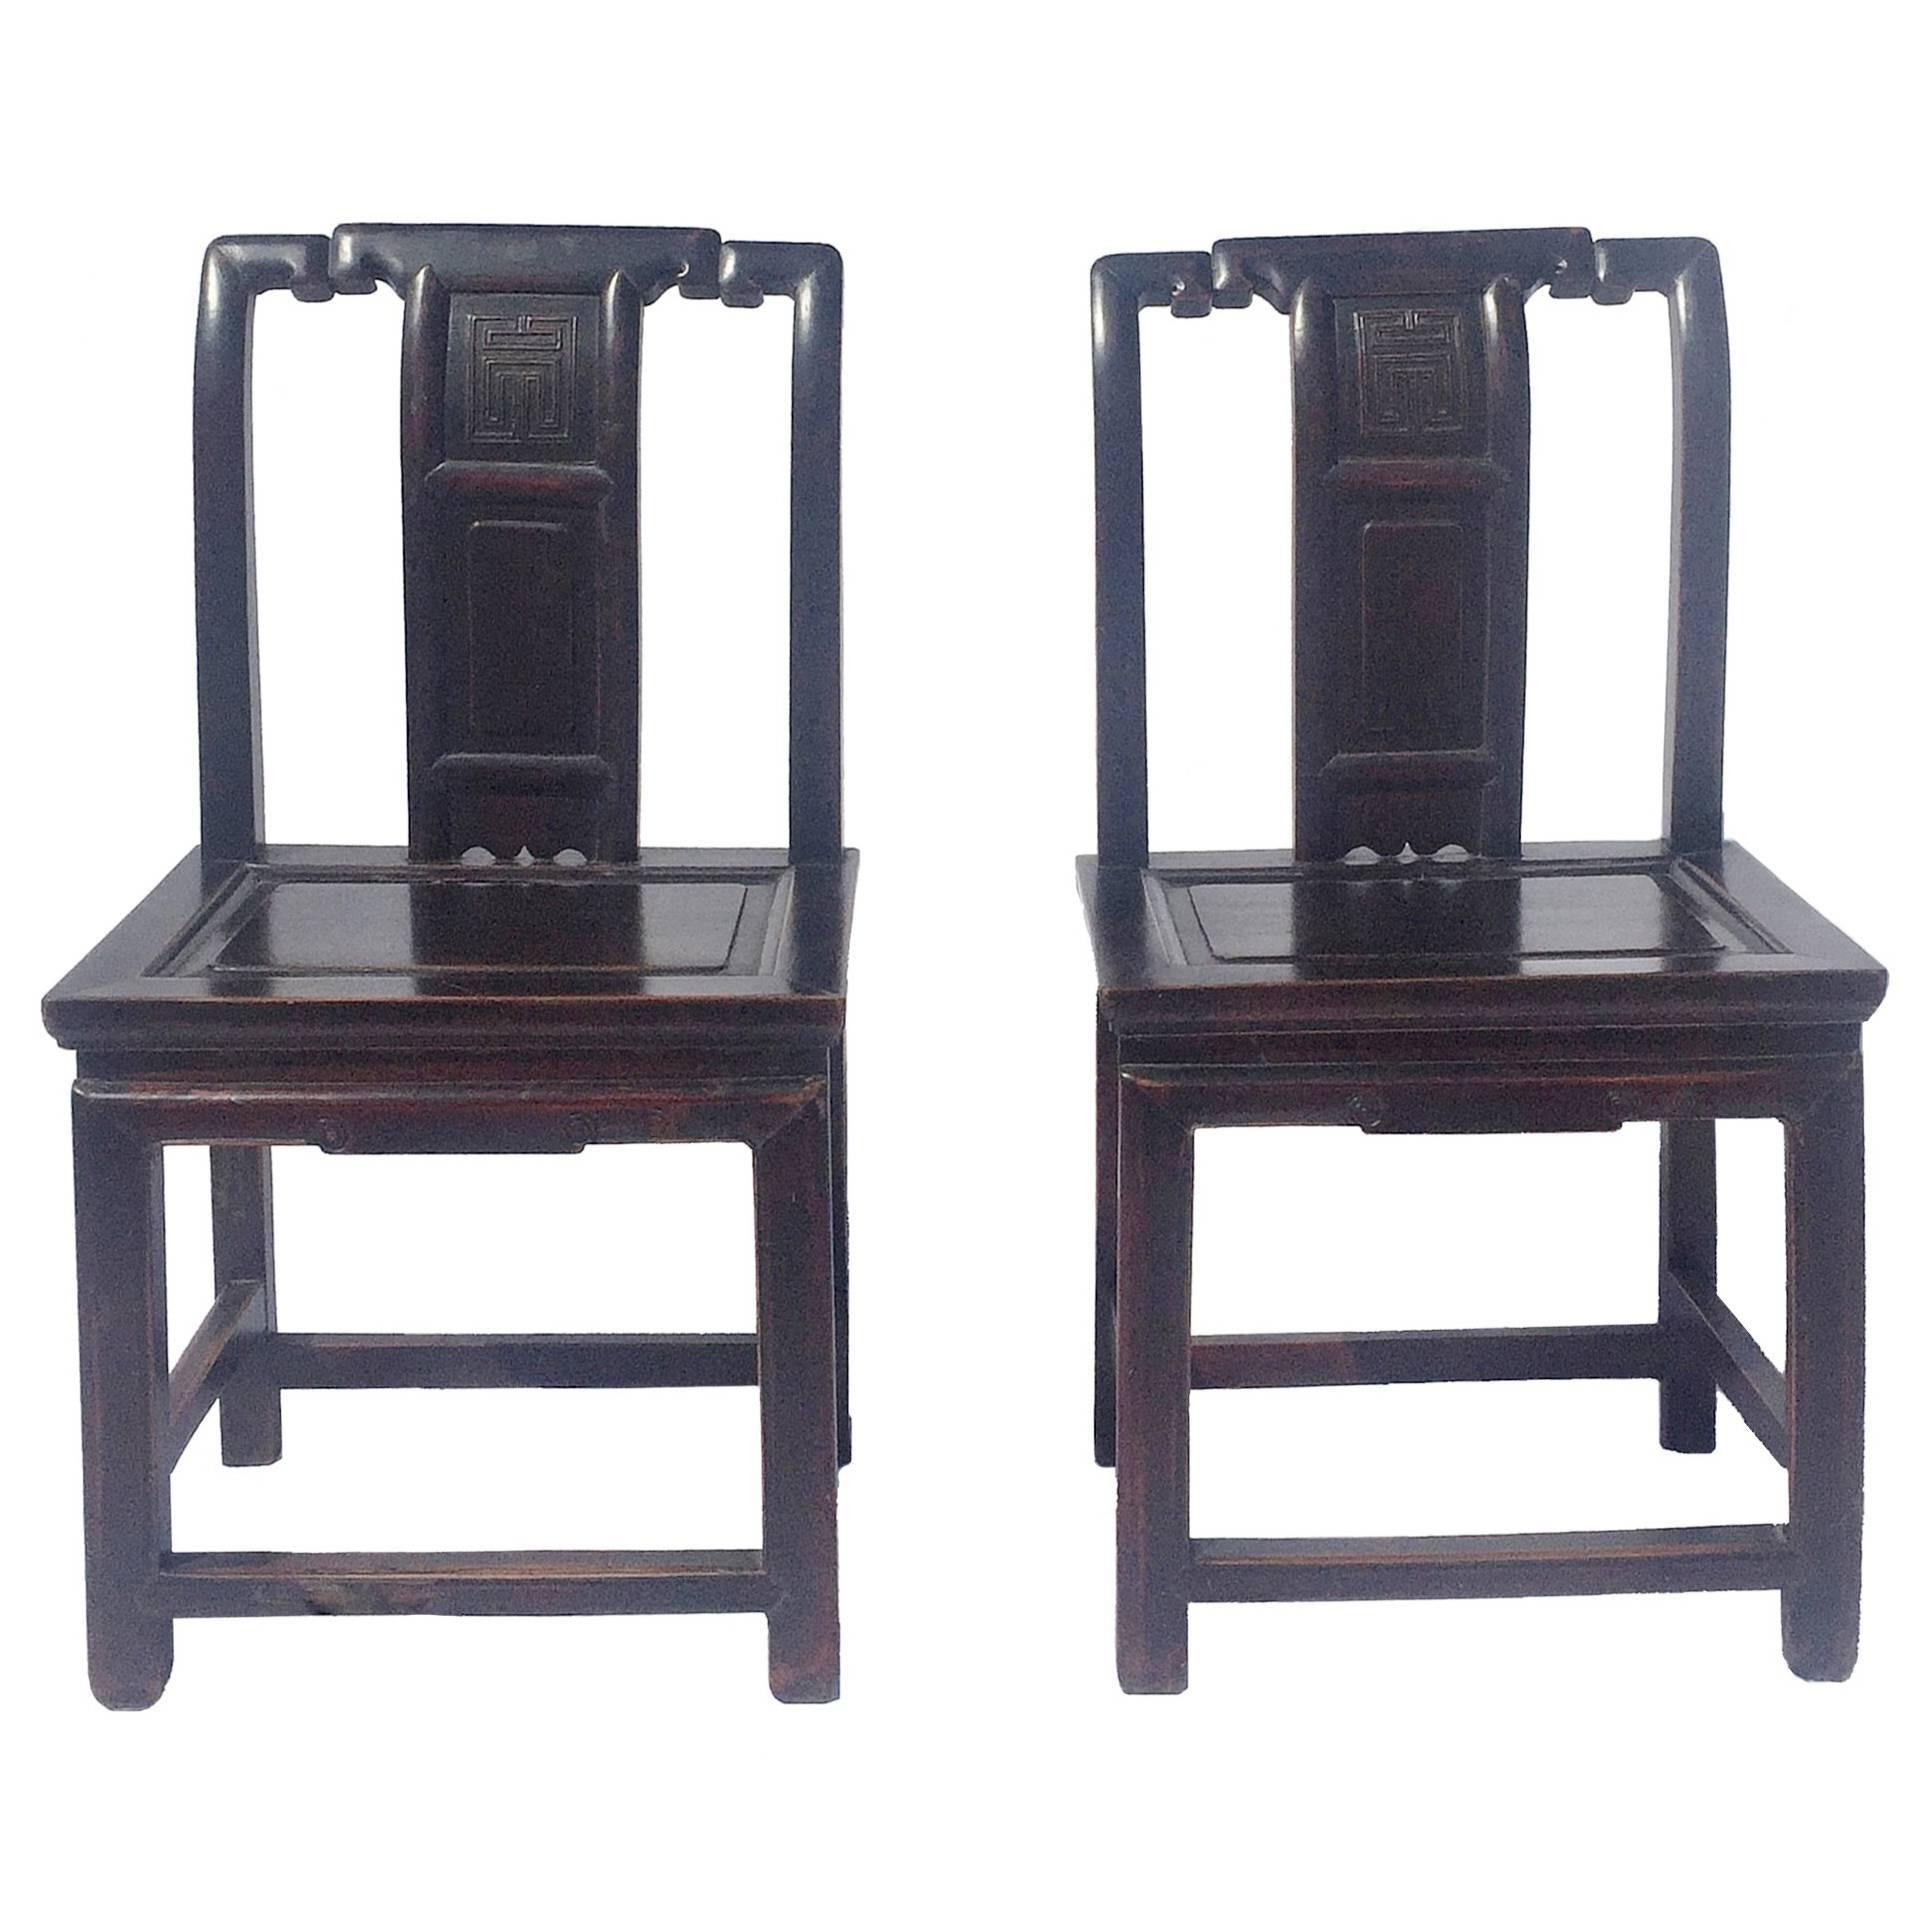 Merveilleux Pair Of Chinese Antique Chairs With Longevity Motif For Sale